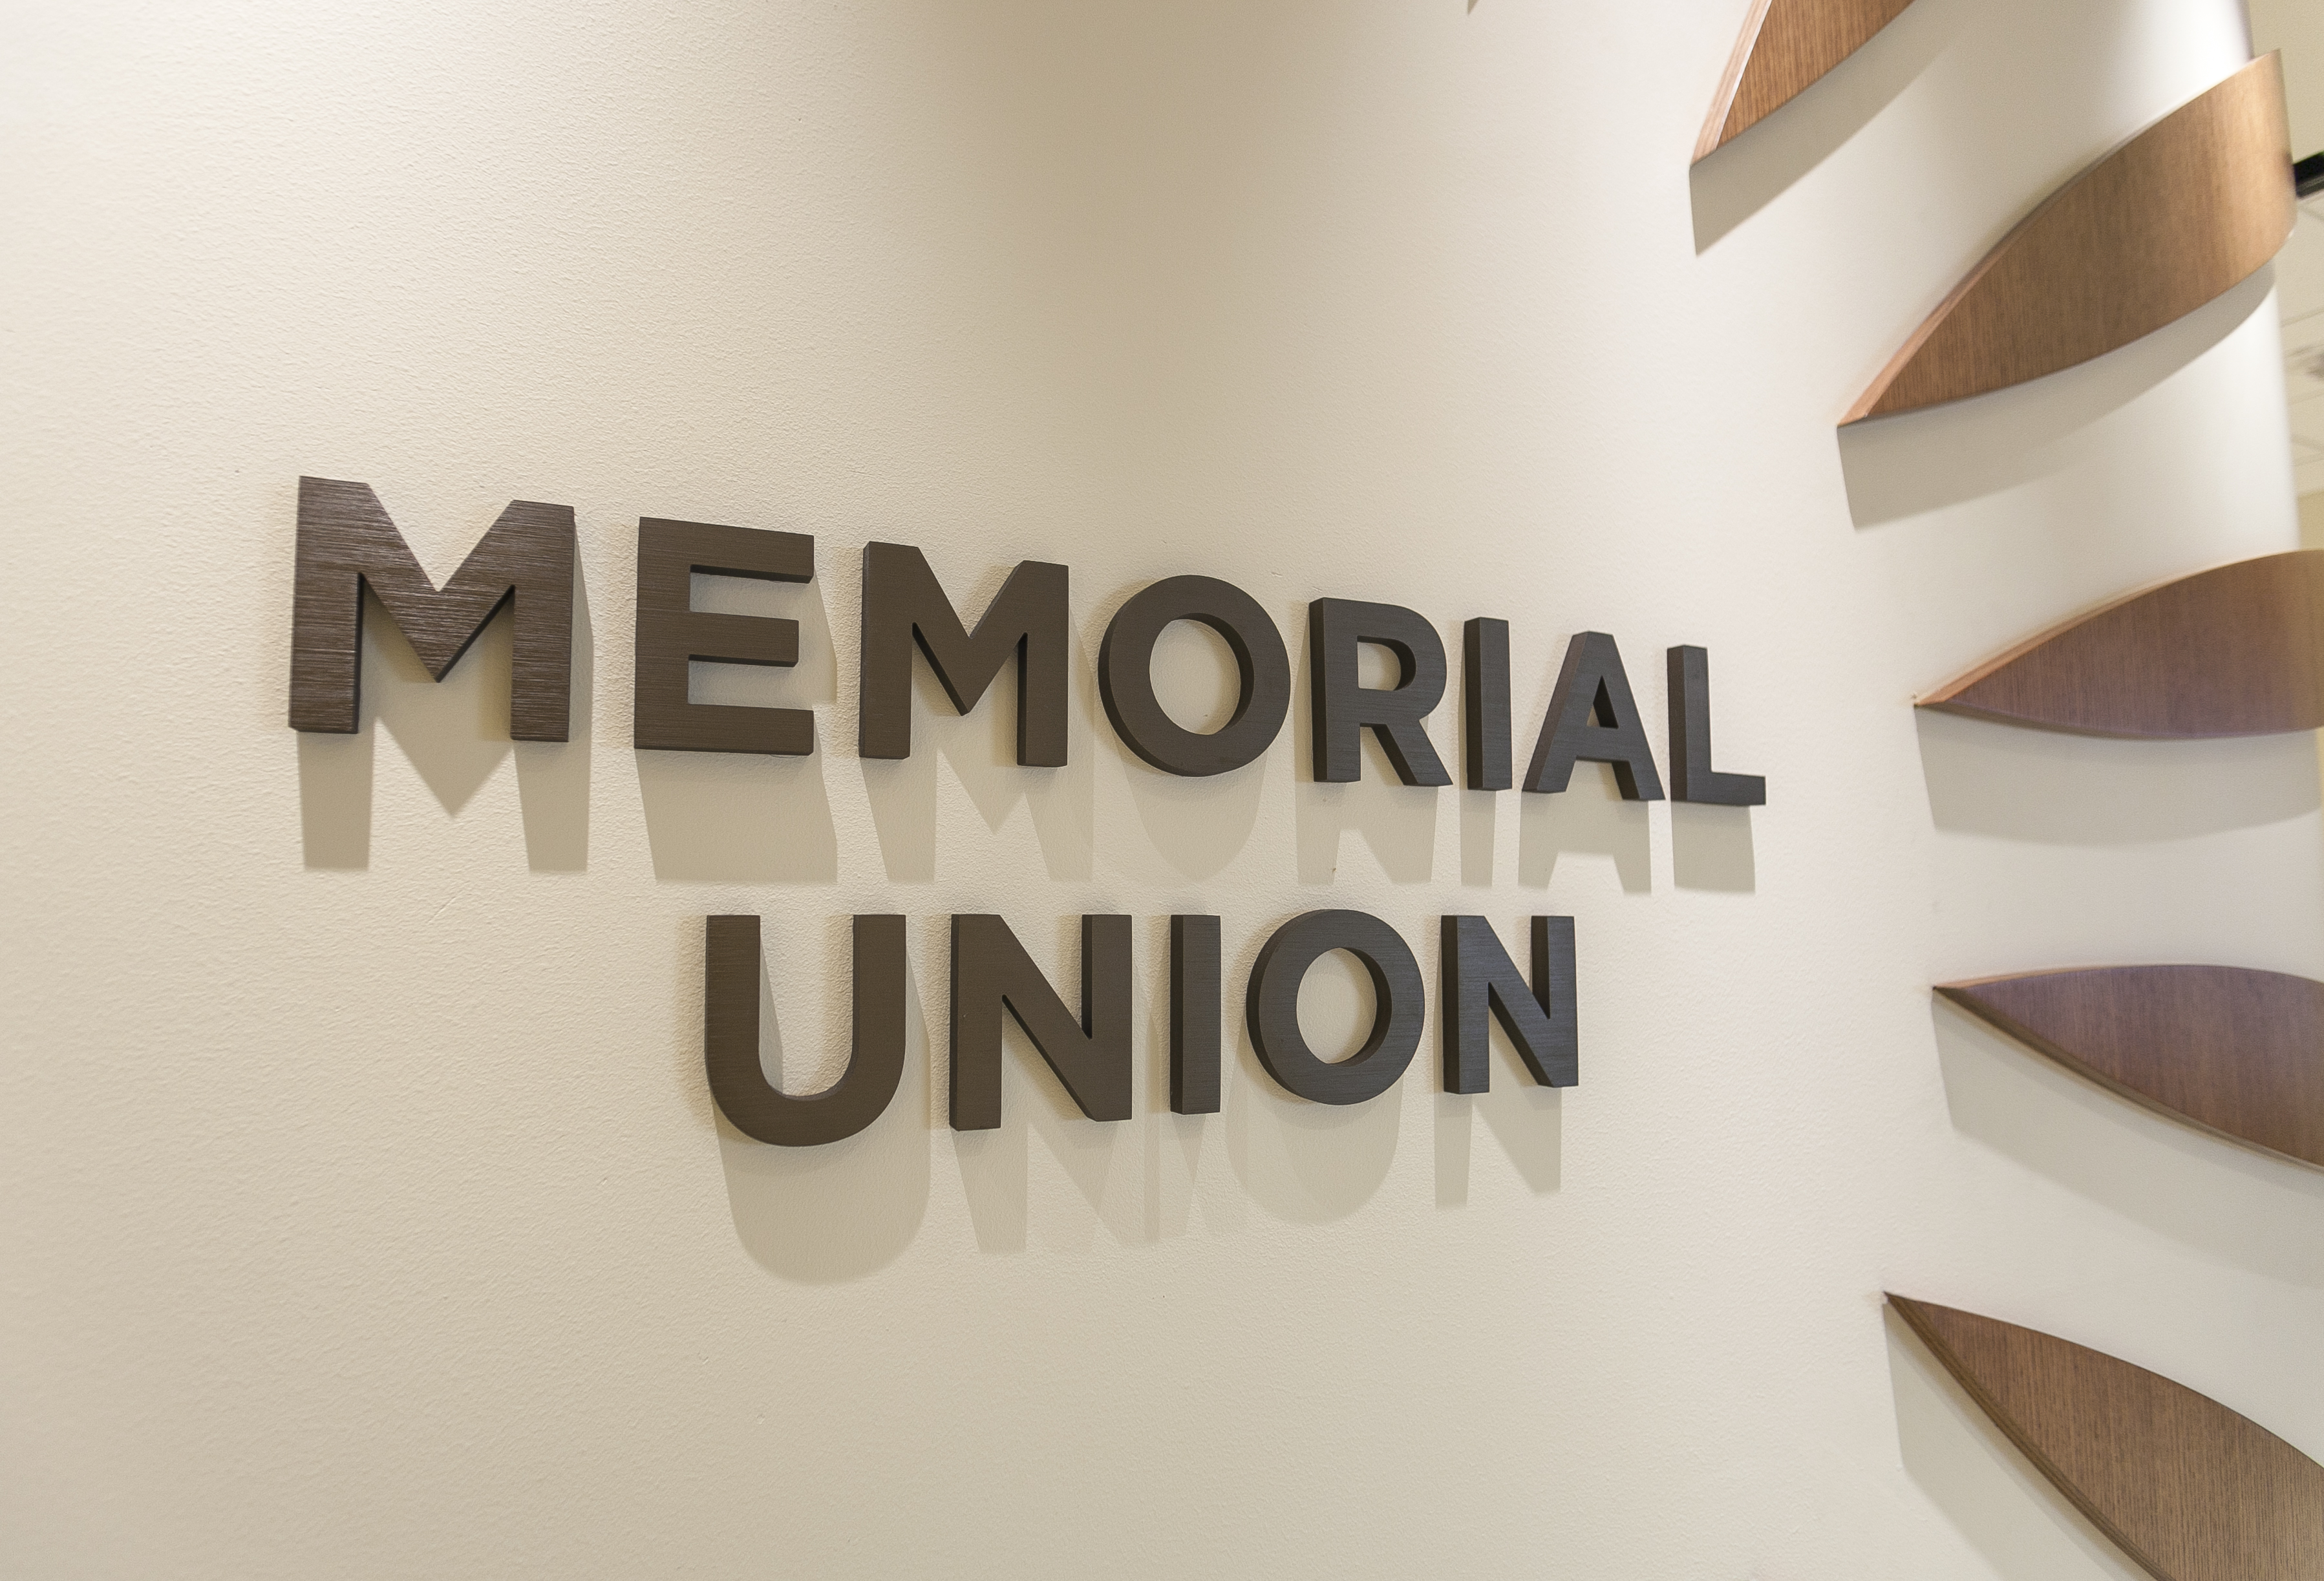 Photos of the remodeled Memorial Union, photographed November 4, 2016. photos by Brian Ebner/Optic Nerve